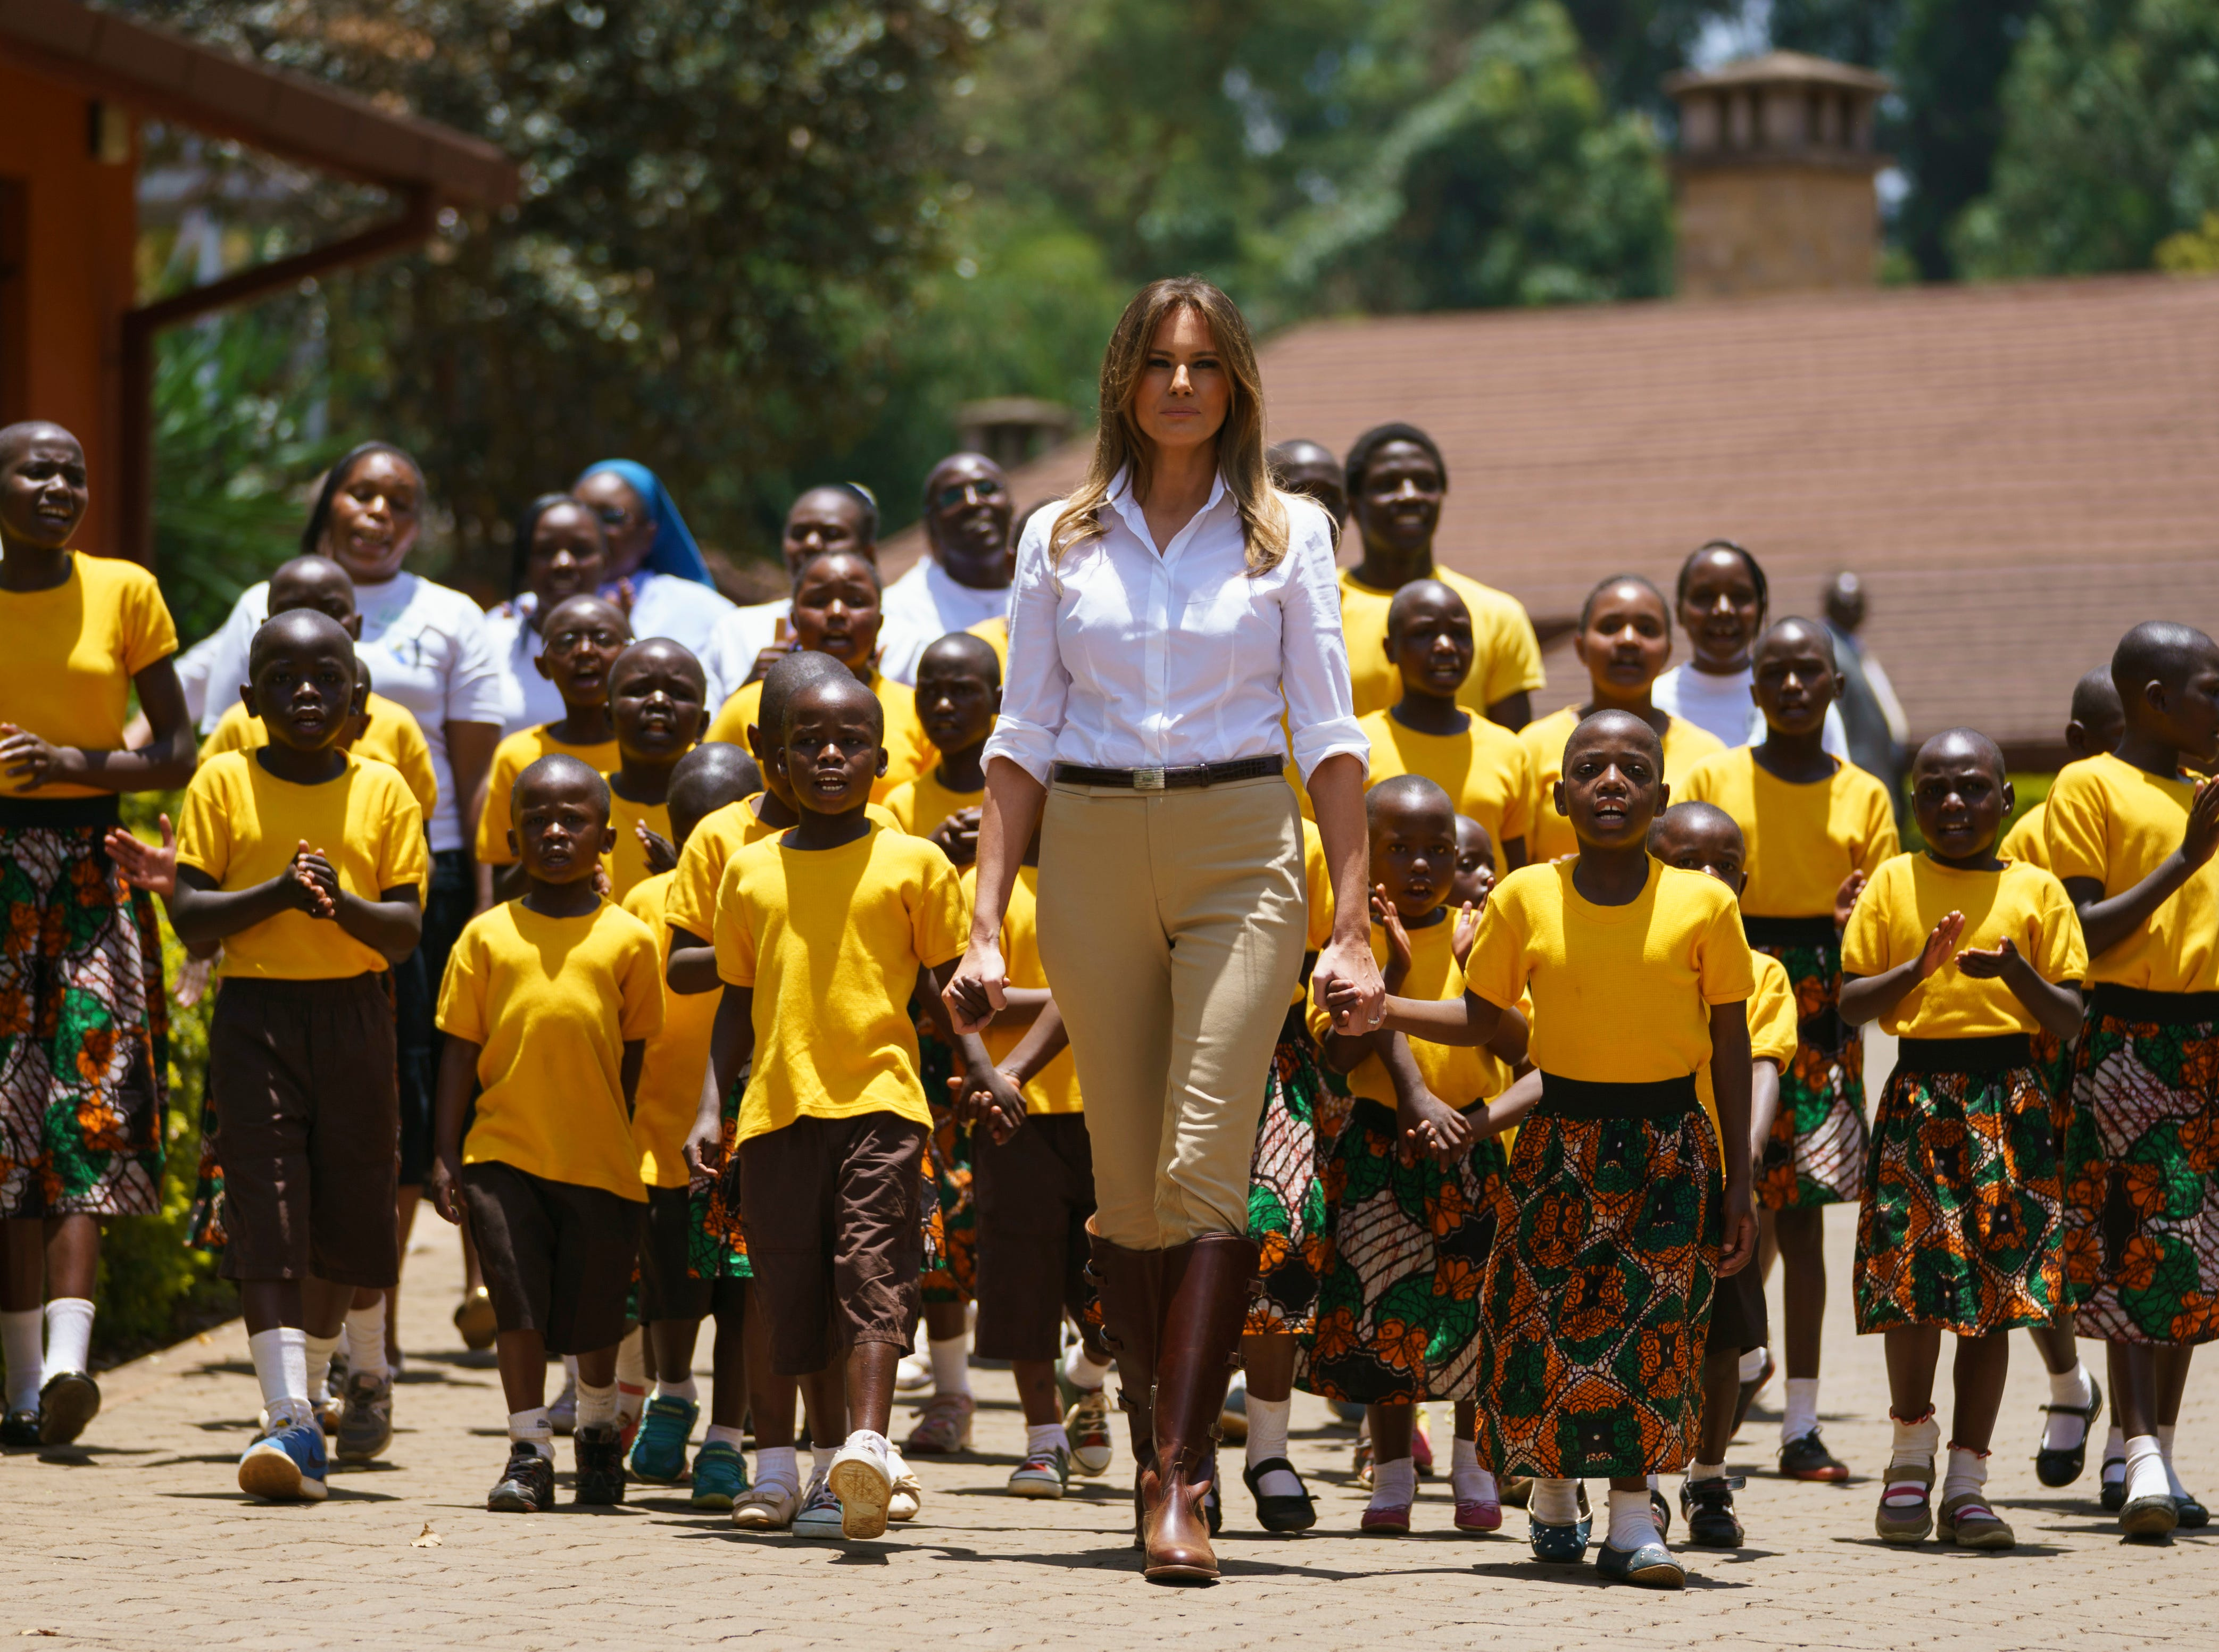 Melania Trump walks with singing children while visiting the Nest Orphanage in Limuru, Kenya, Friday, Oct. 5, 2018. She also has fed baby elephants as she visits a national park in Kenya to highlight conservation efforts, and  went on a quick safari. Mrs. Trump is on her first-ever visit to Africa, and her first extended solo international trip as first lady.